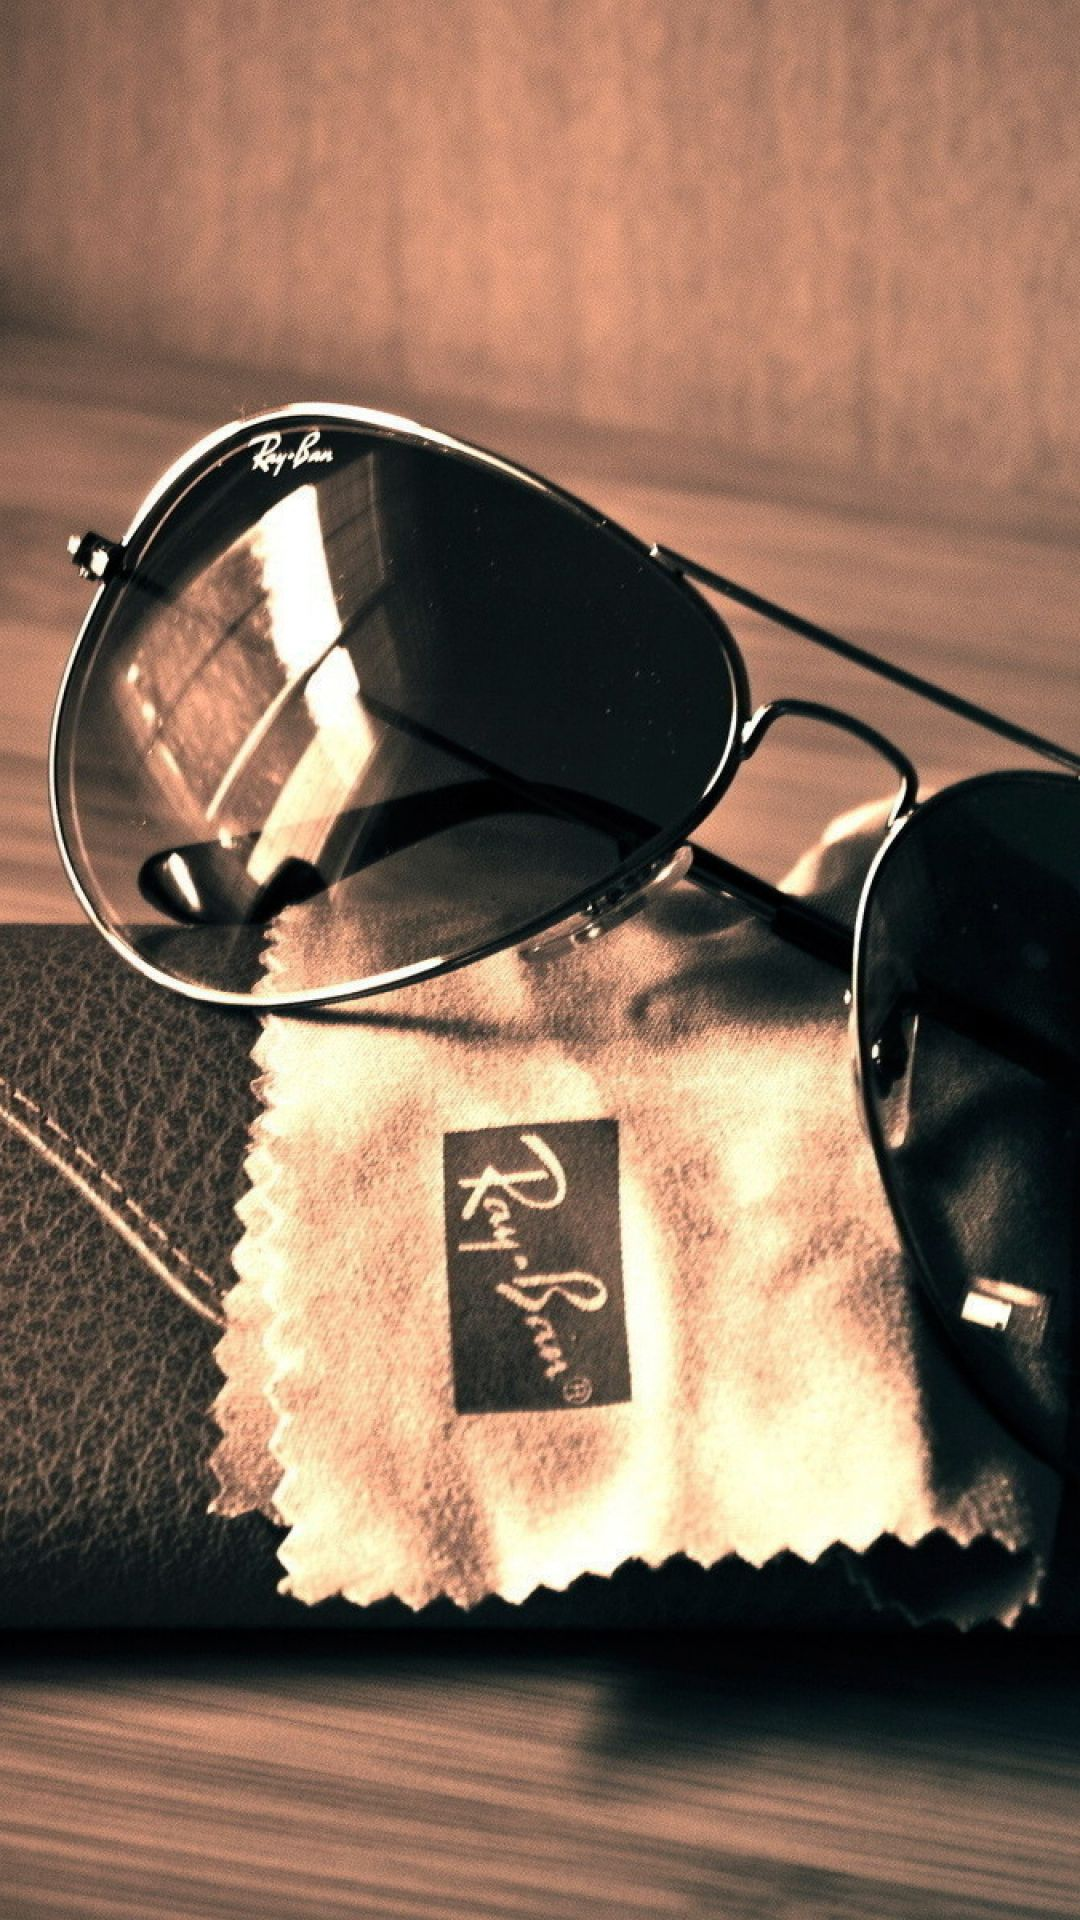 37836e09efe sunglasses wallpaper